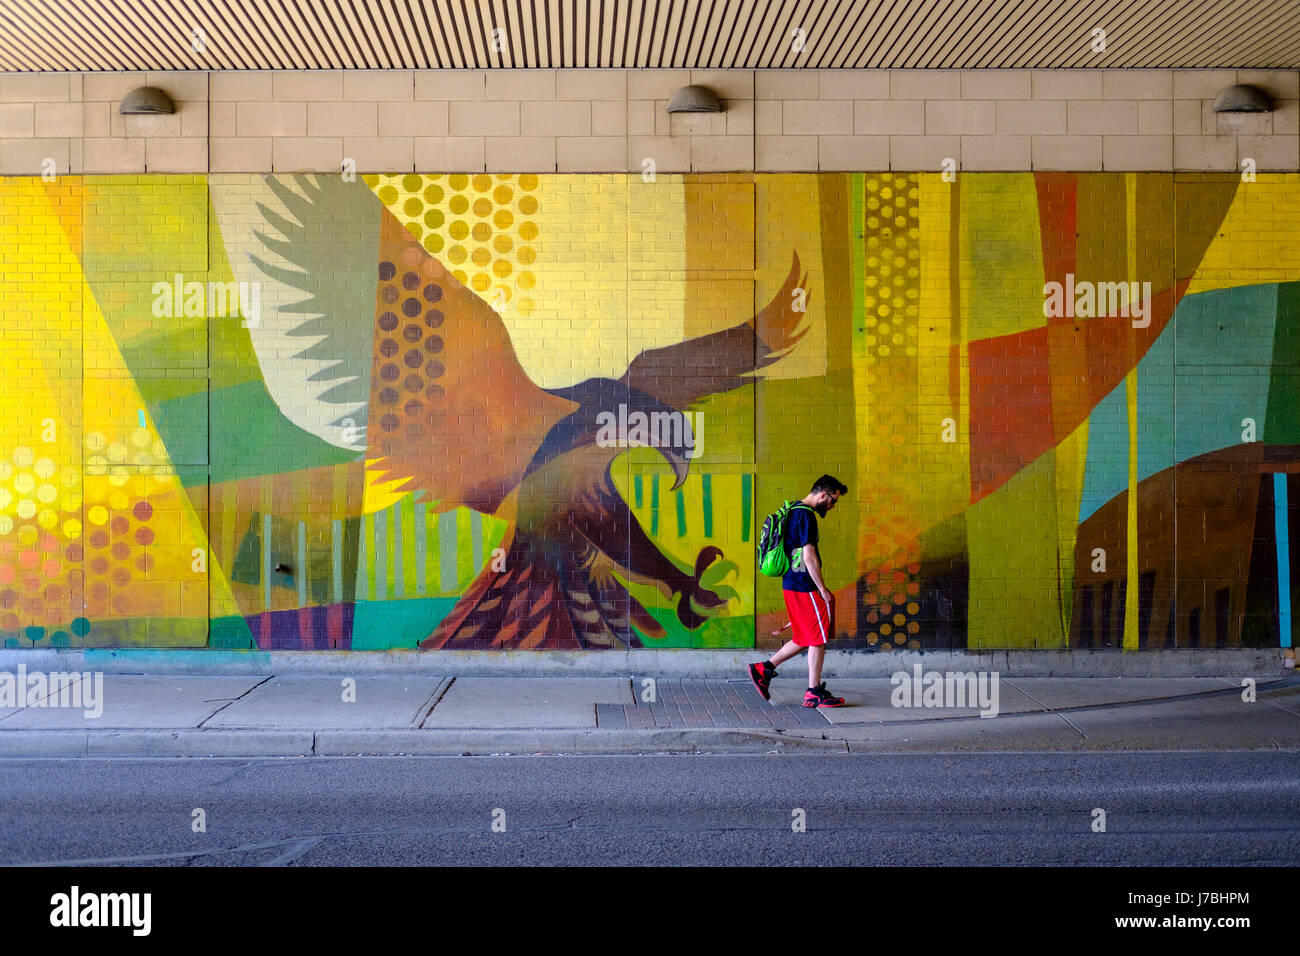 Wall graffiti art, eagle about to grab a male pedestrian walking on the sidewalk, predator and prey, danger, student - Stock Image